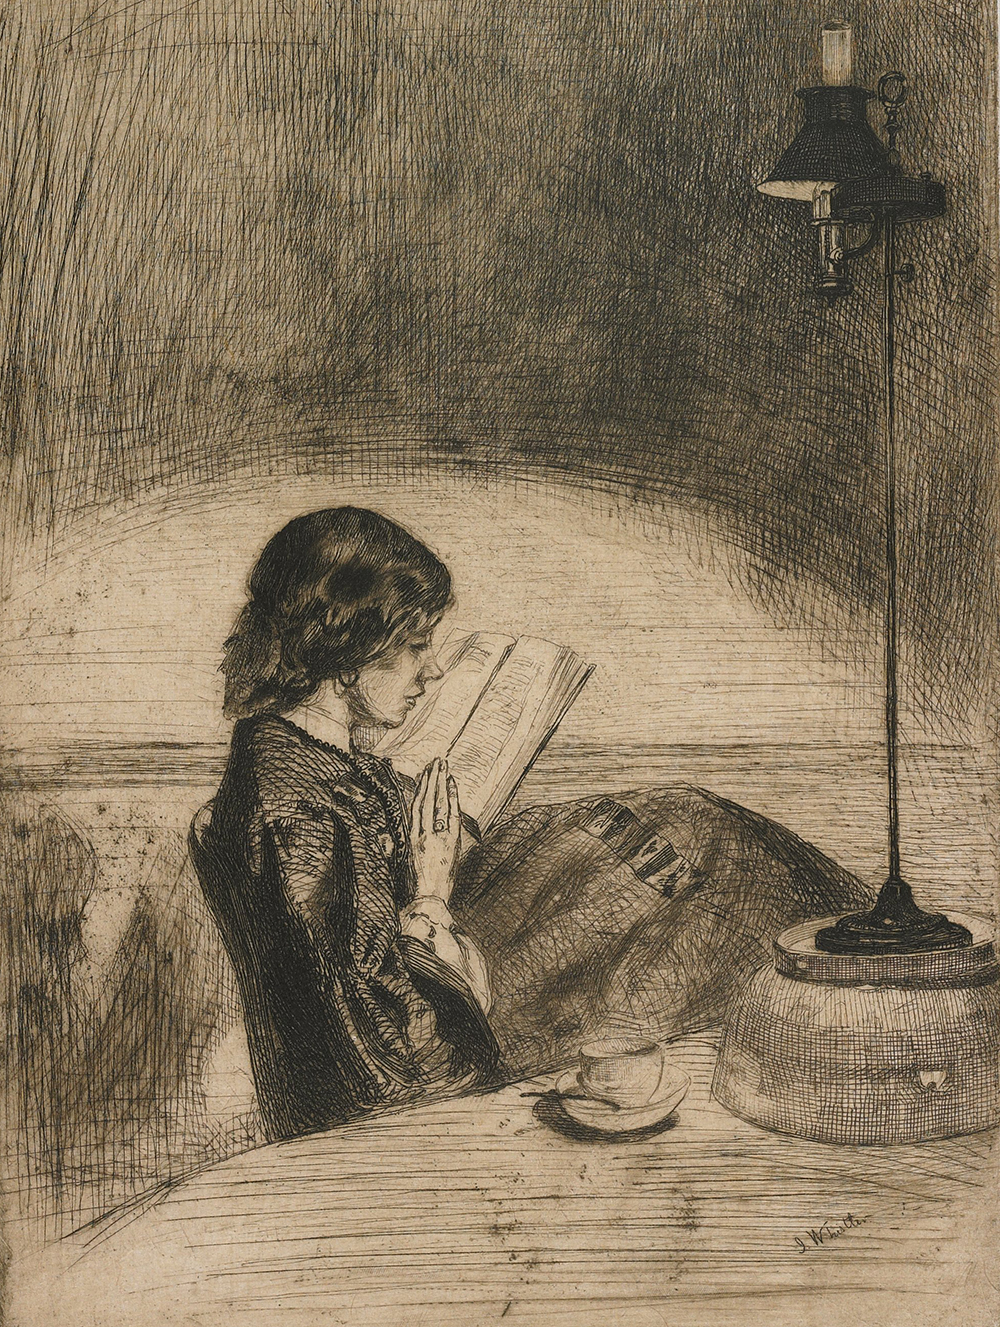 Reading by Lamplight, by James McNeill Whistler, 1858. Minneapolis Institute of Art, The William M. Ladd Collection Gift of Herschel V. Jones, 1916.